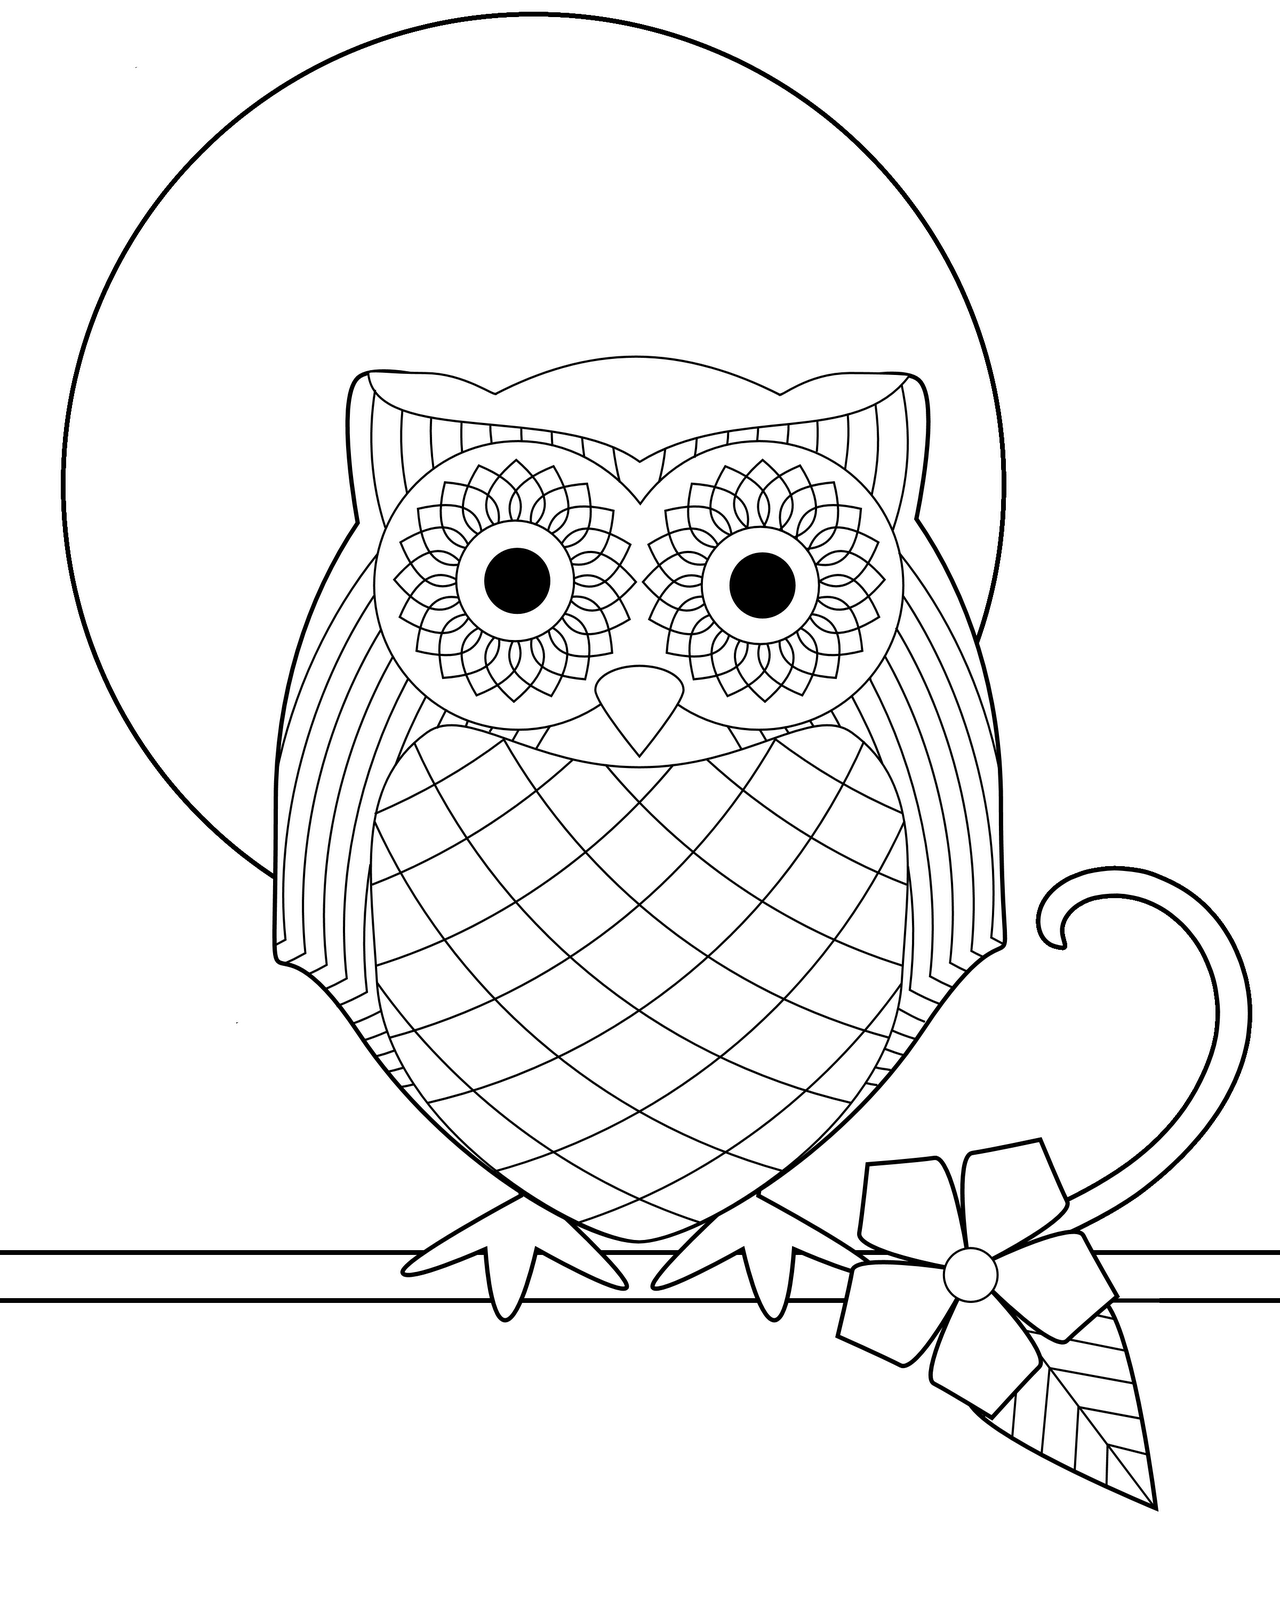 1280x1600 Free Printable Owl Coloring Pages For Kids